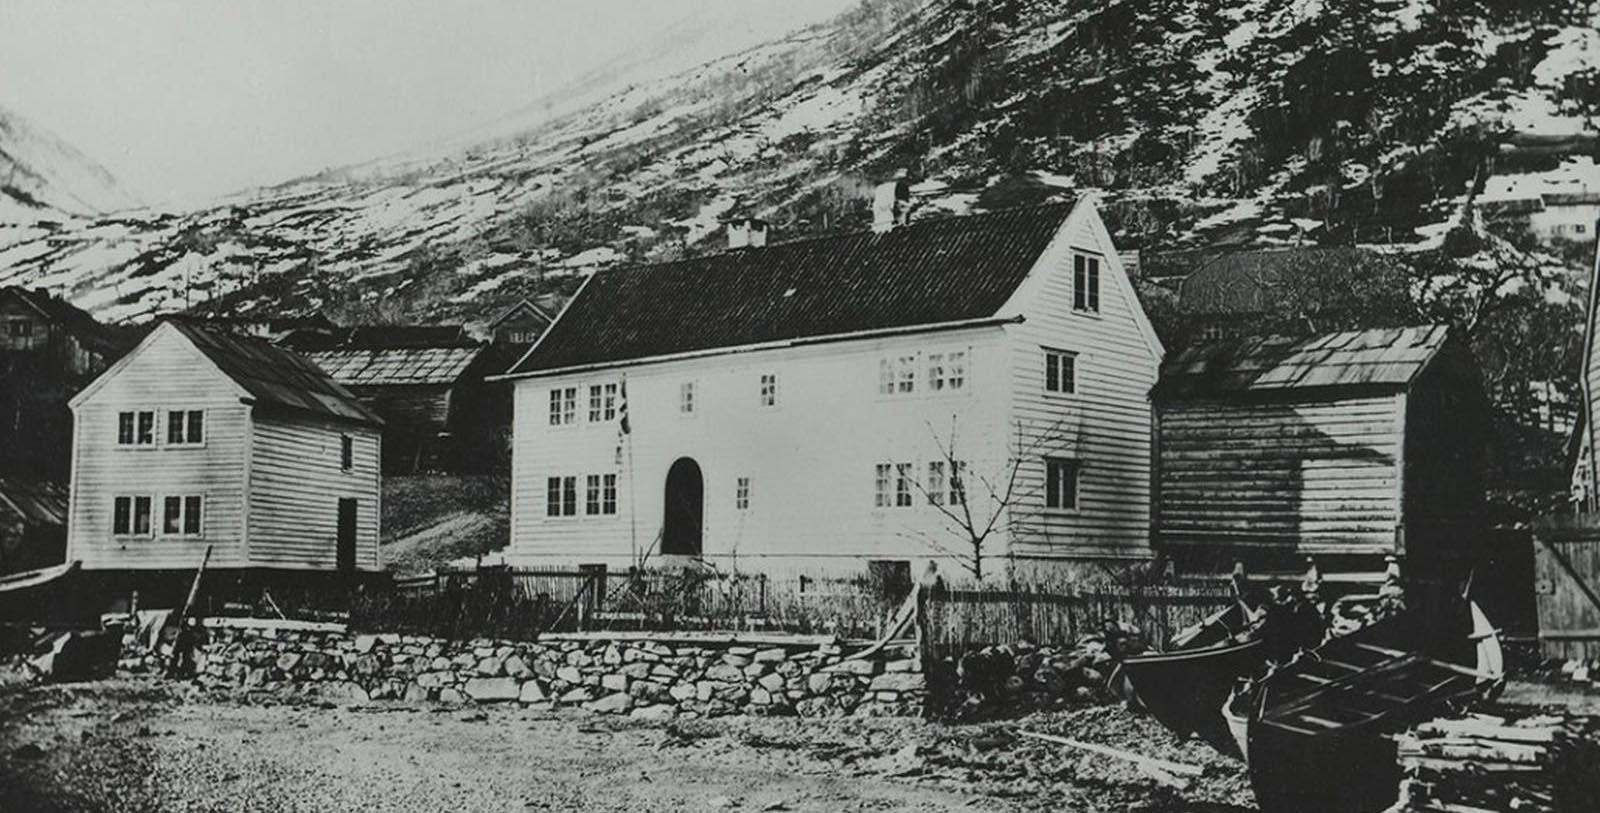 Historic Image of Hotel Exterior Utne Hotel, 1722, Member of Historic Hotels Worldwide, in Utne, Norway, Discover